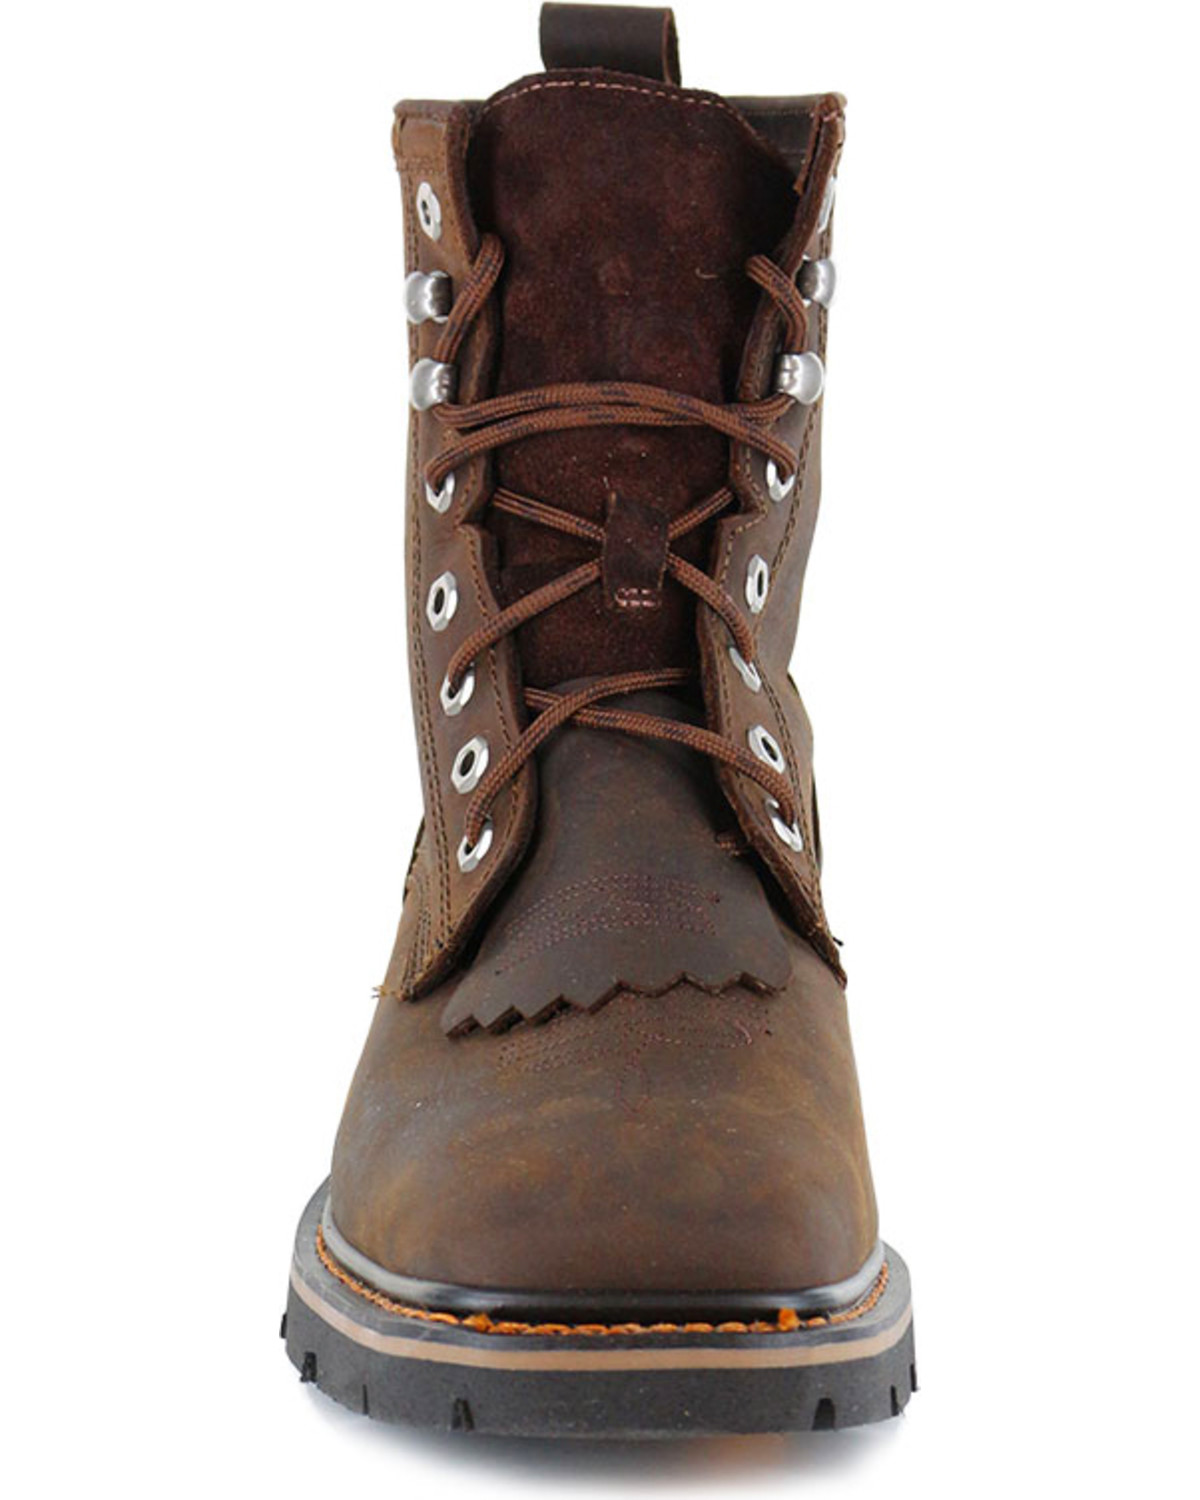 Cody James Men S Lace Up Kiltie Work Boots Square Toe